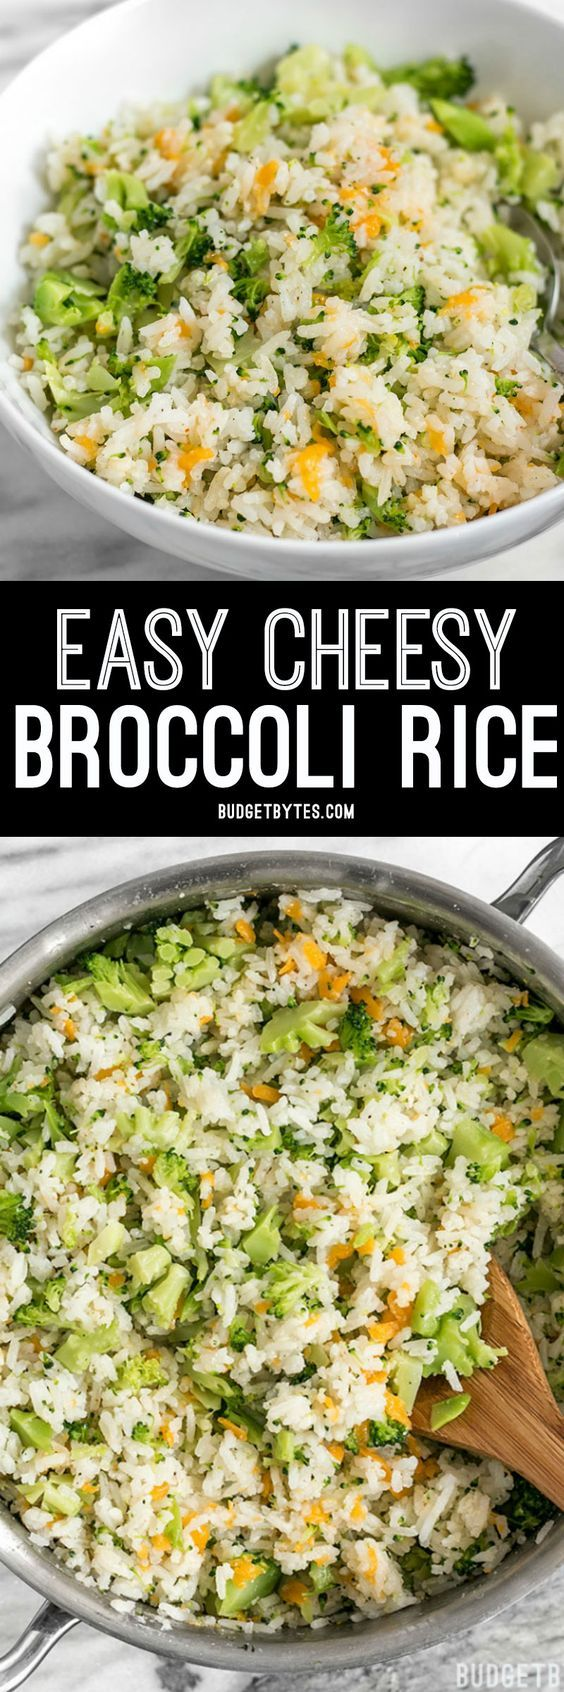 This Easy Cheesy Broccoli Rice is a fast and flavorful side when you don't have time to make a classic Broccoli Cheddar Casserole. BudgetBytes.com